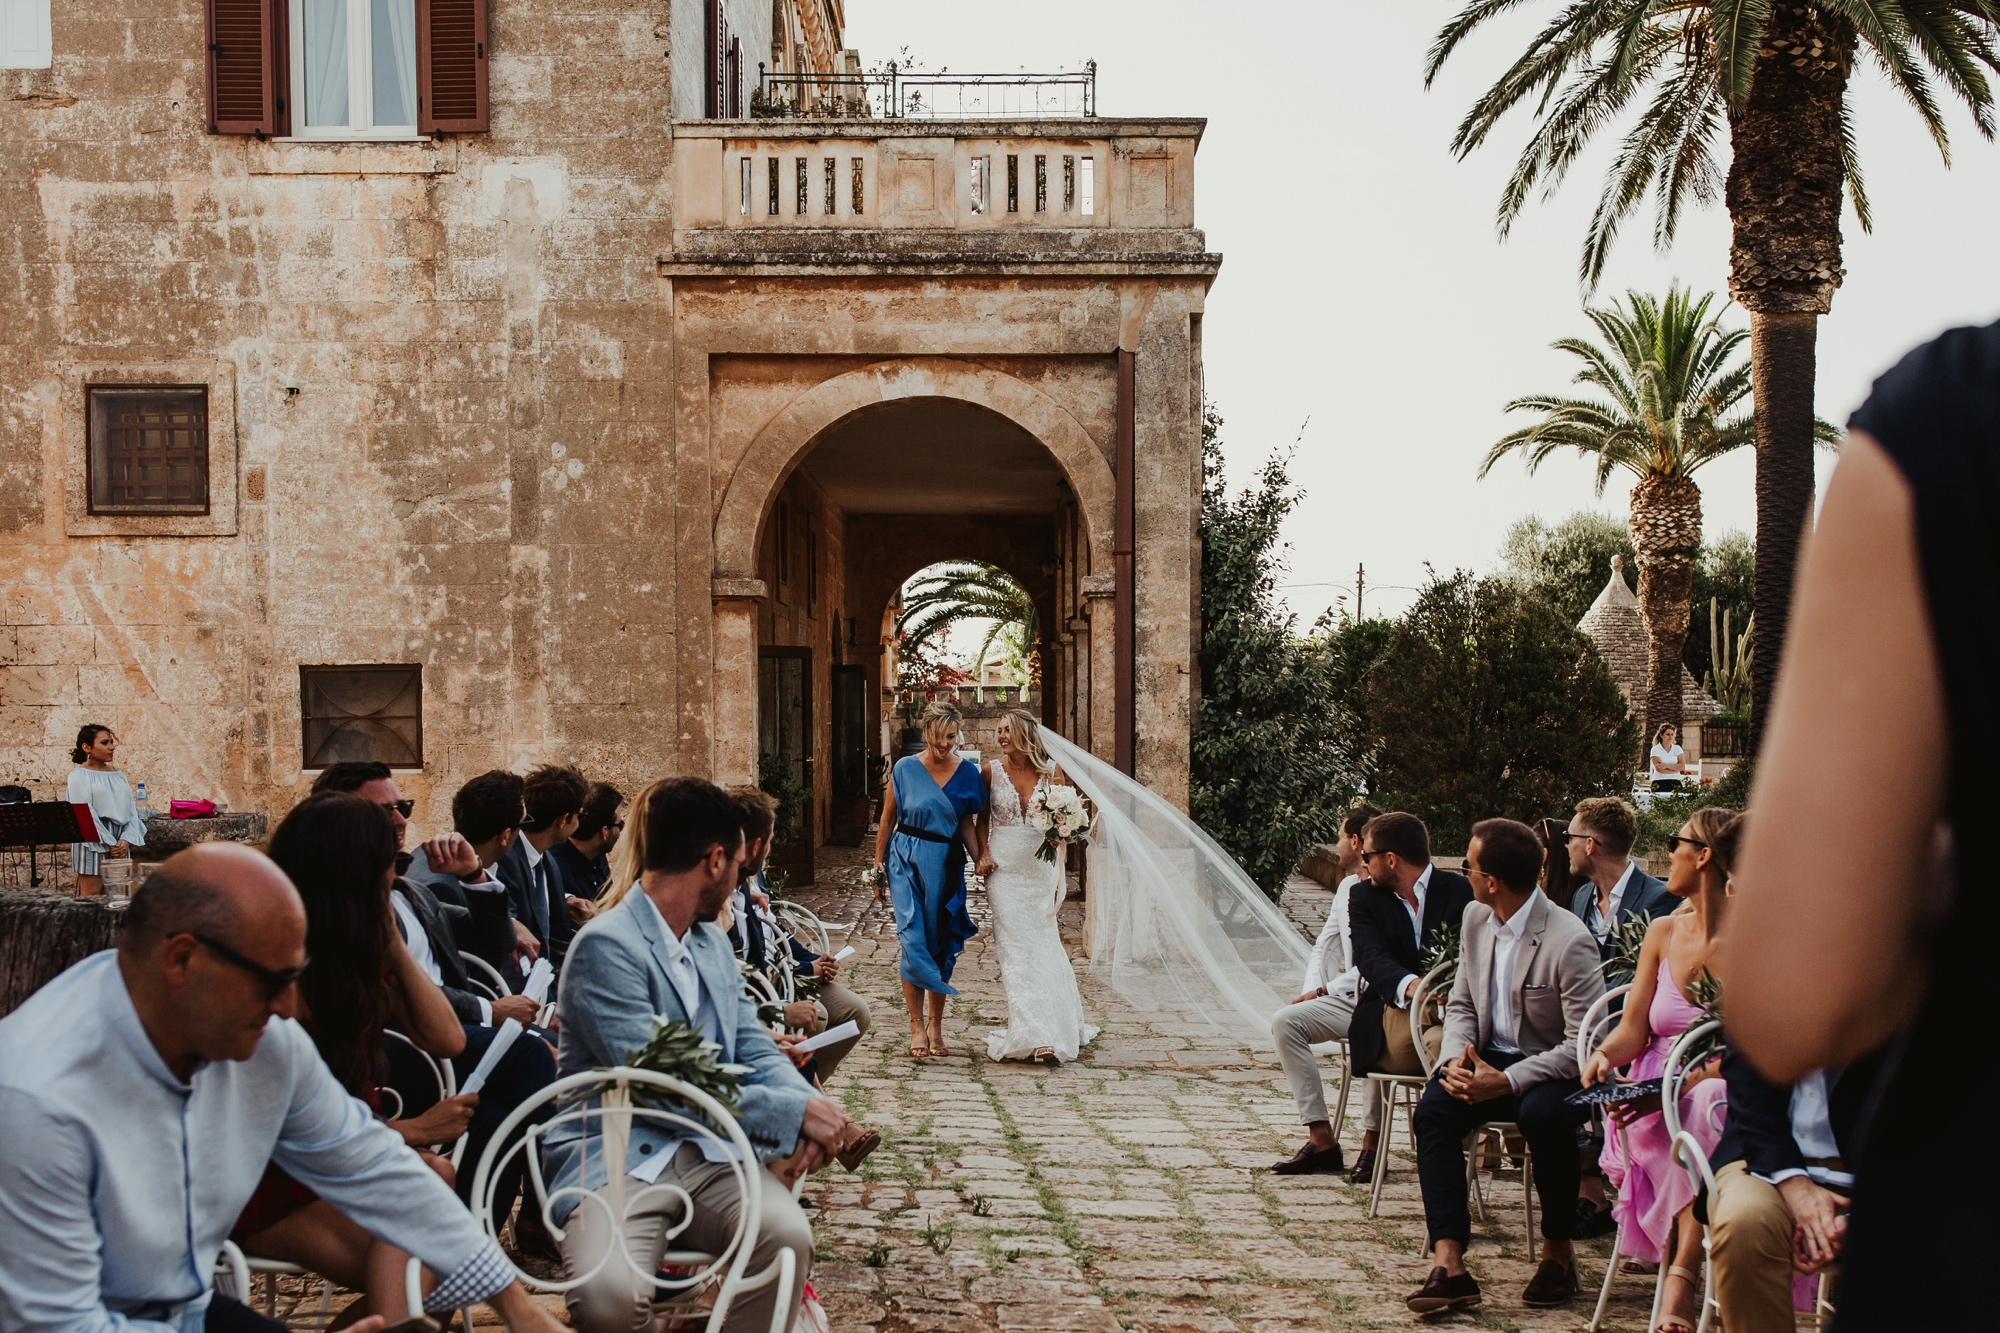 0000000037_Rob and Lucy-301_Weddings_Destination_Italy_got_Just_Engaged.jpg